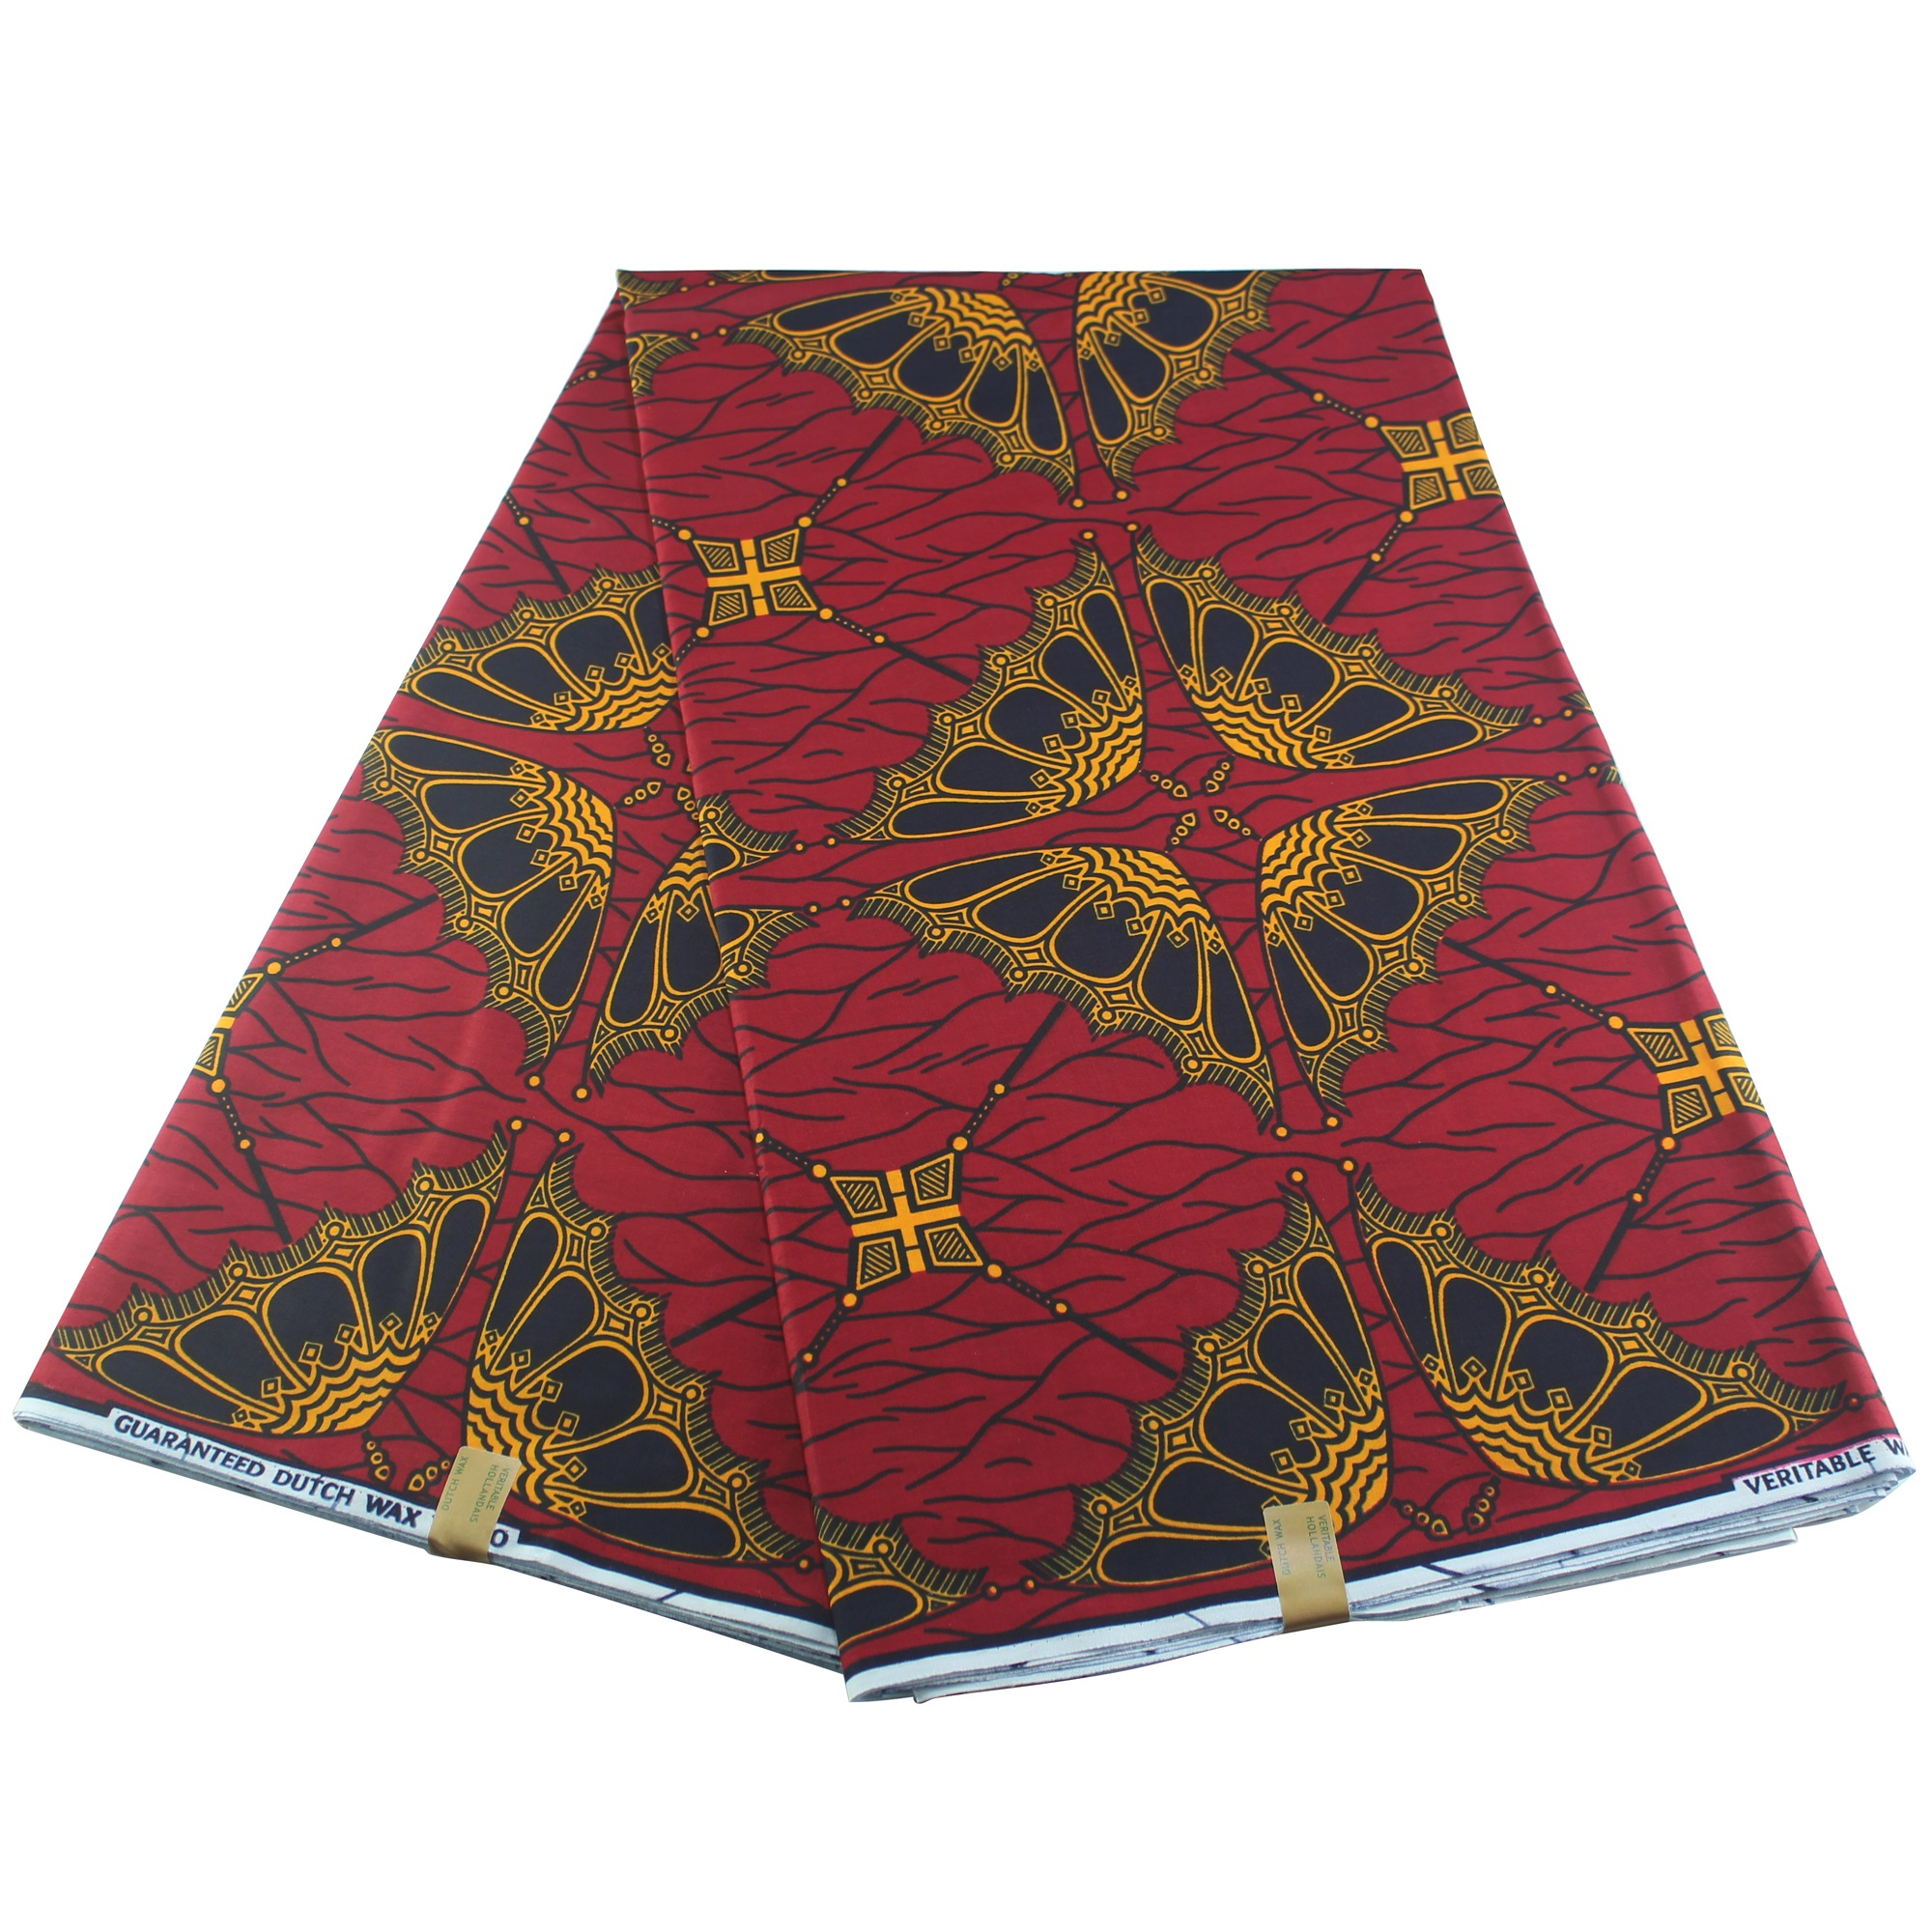 New African Dutch Wax 2019 Colorful Ankara Fabric Material 100% Cotton 6Yards For Clothing Sewing